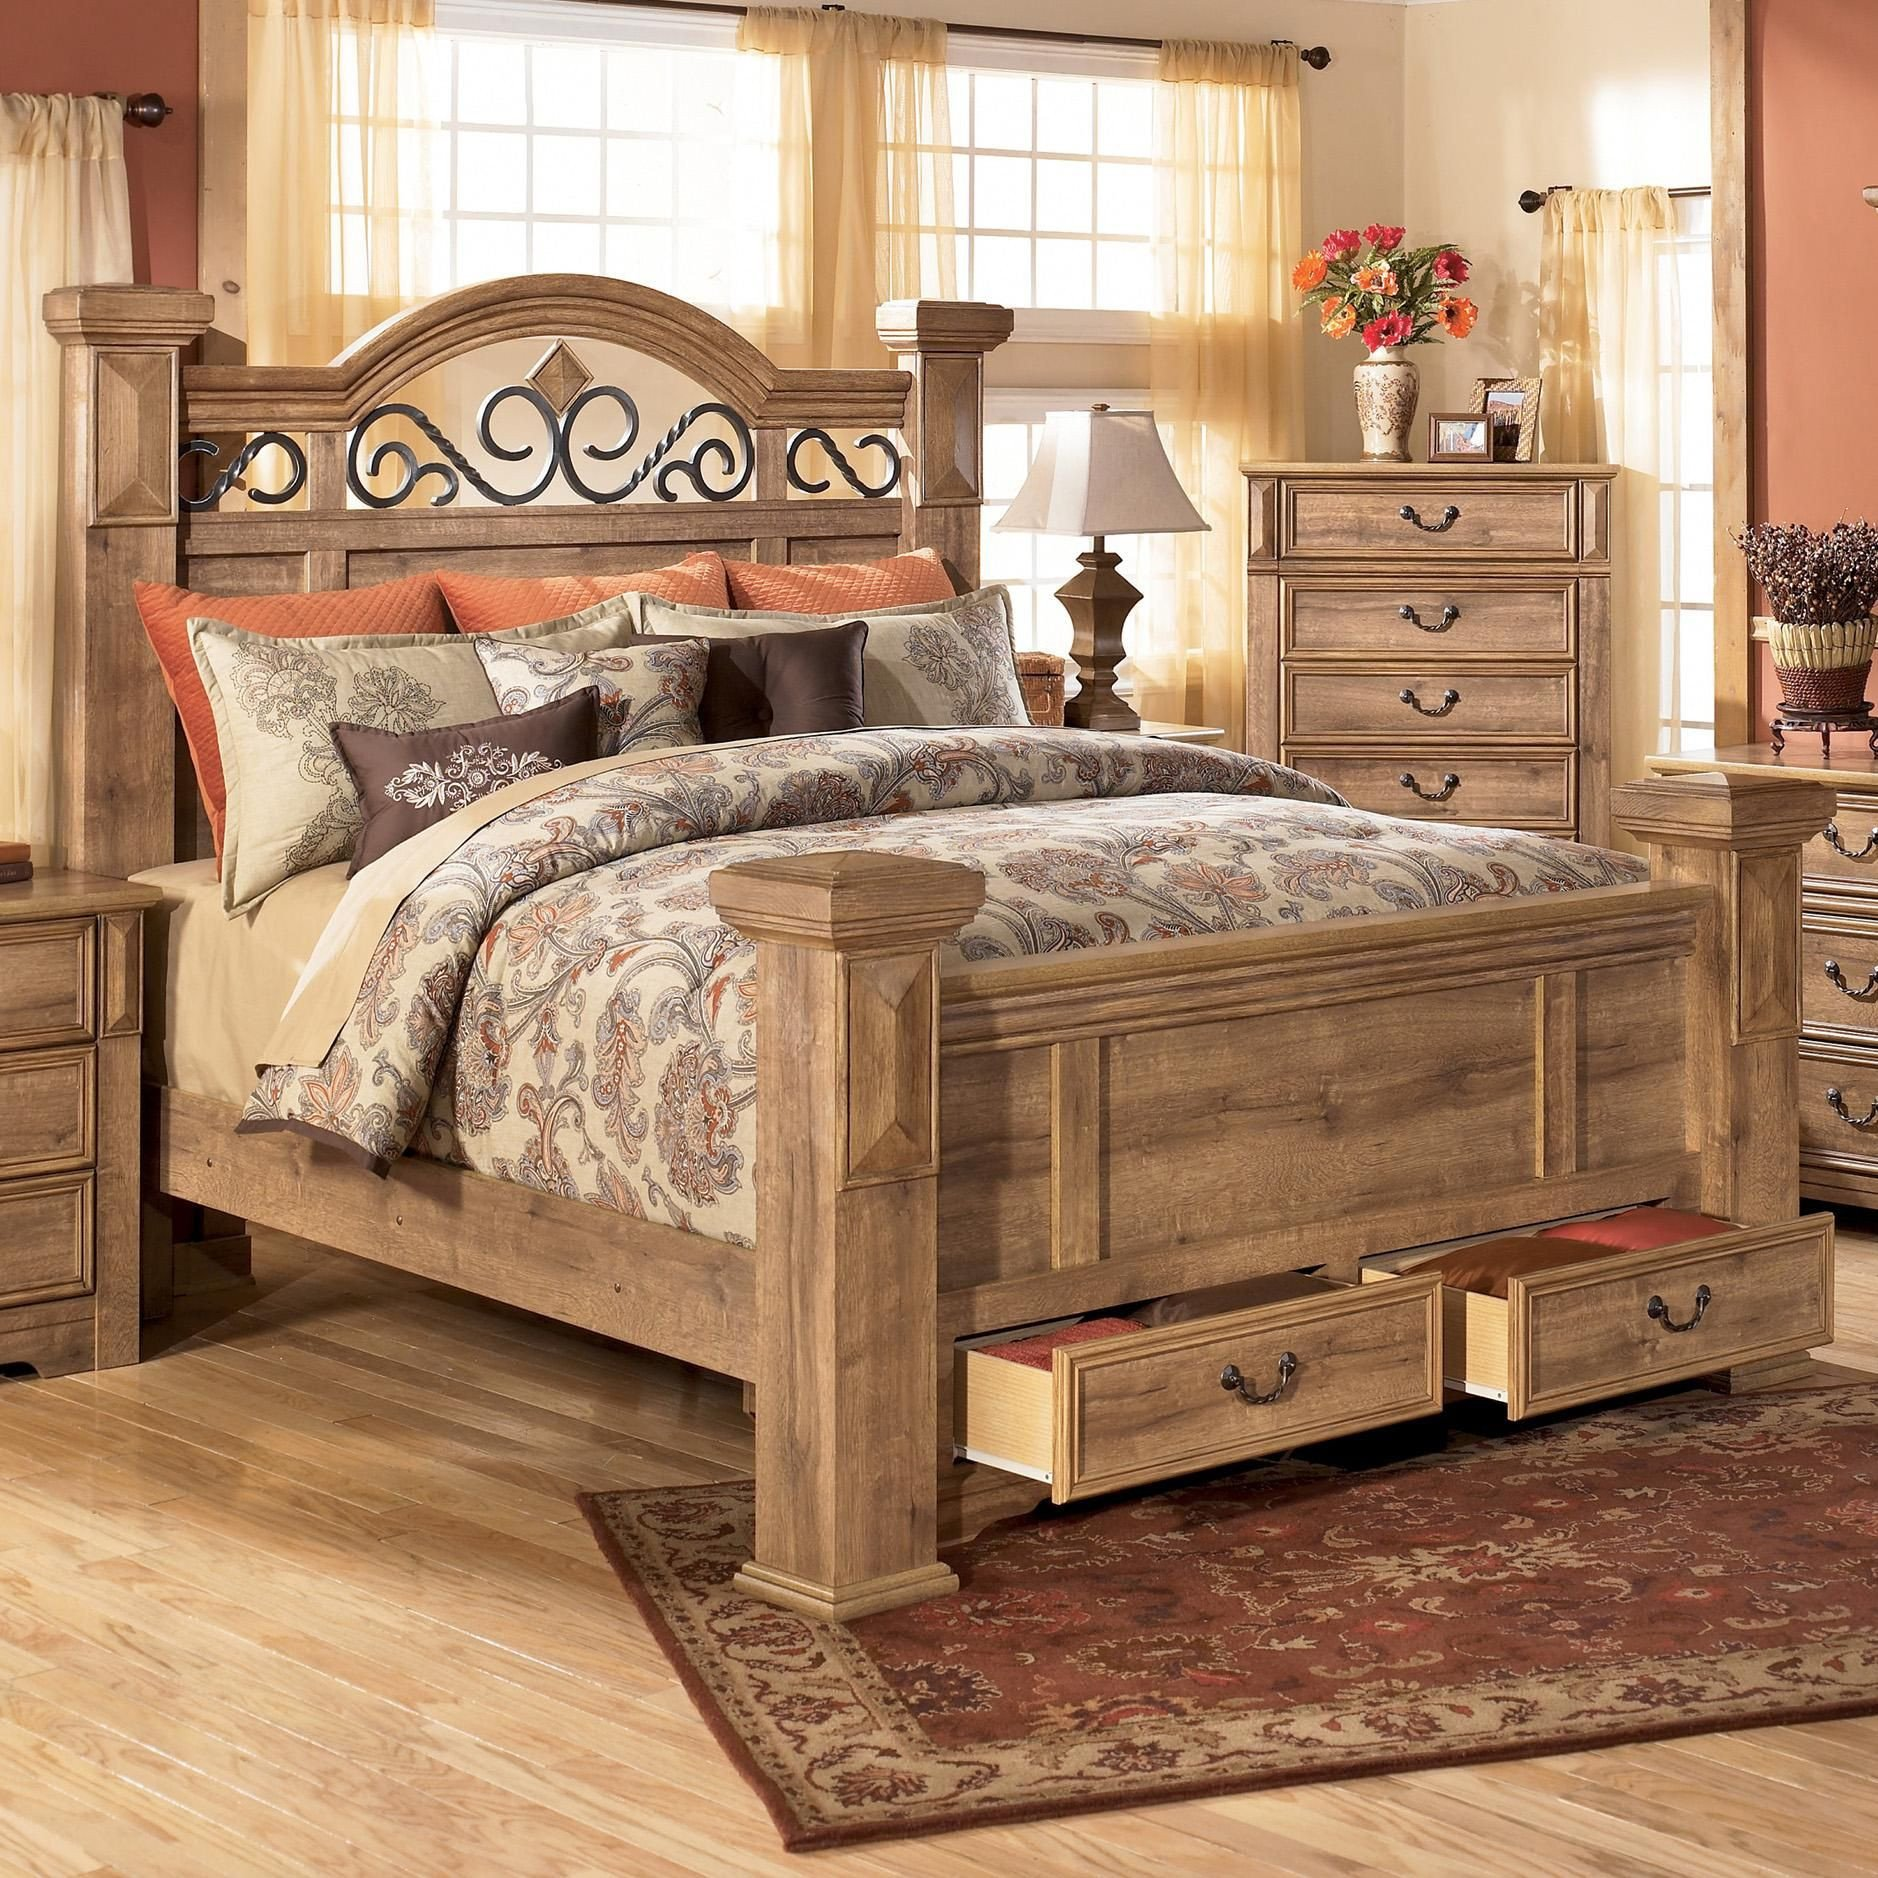 Regency Furniture Bedroom Set New Whimbrel forge King Poster Storage Bed by Signature Design